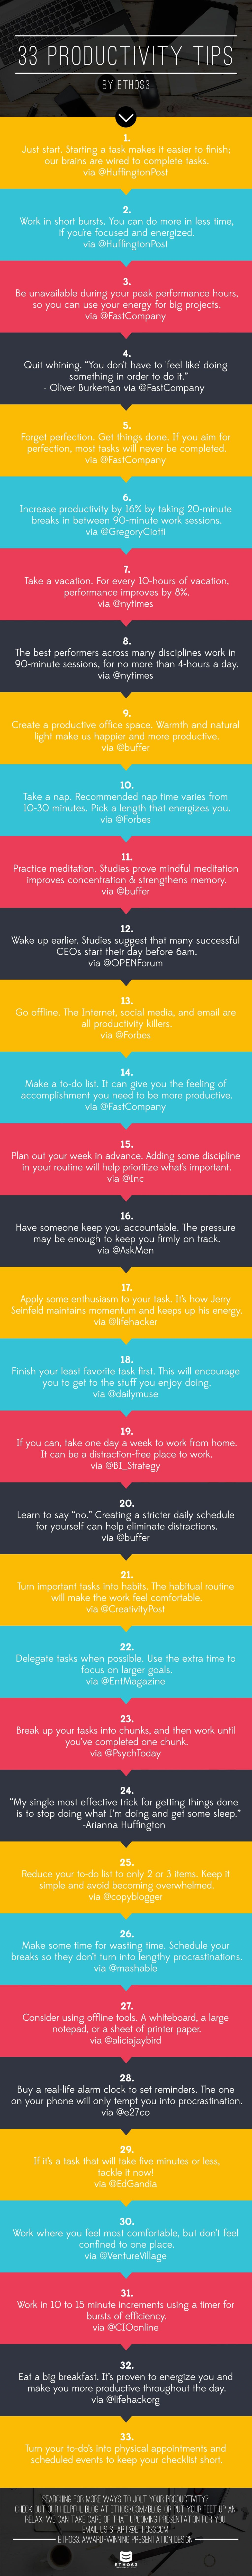 33 Productivity Tips, in 140 Characters or Less | Ethos3 http://www.ethos3.com/2014/08/how-to-kickstart-your-productivity-33-tips-in-140-characters-or-less/